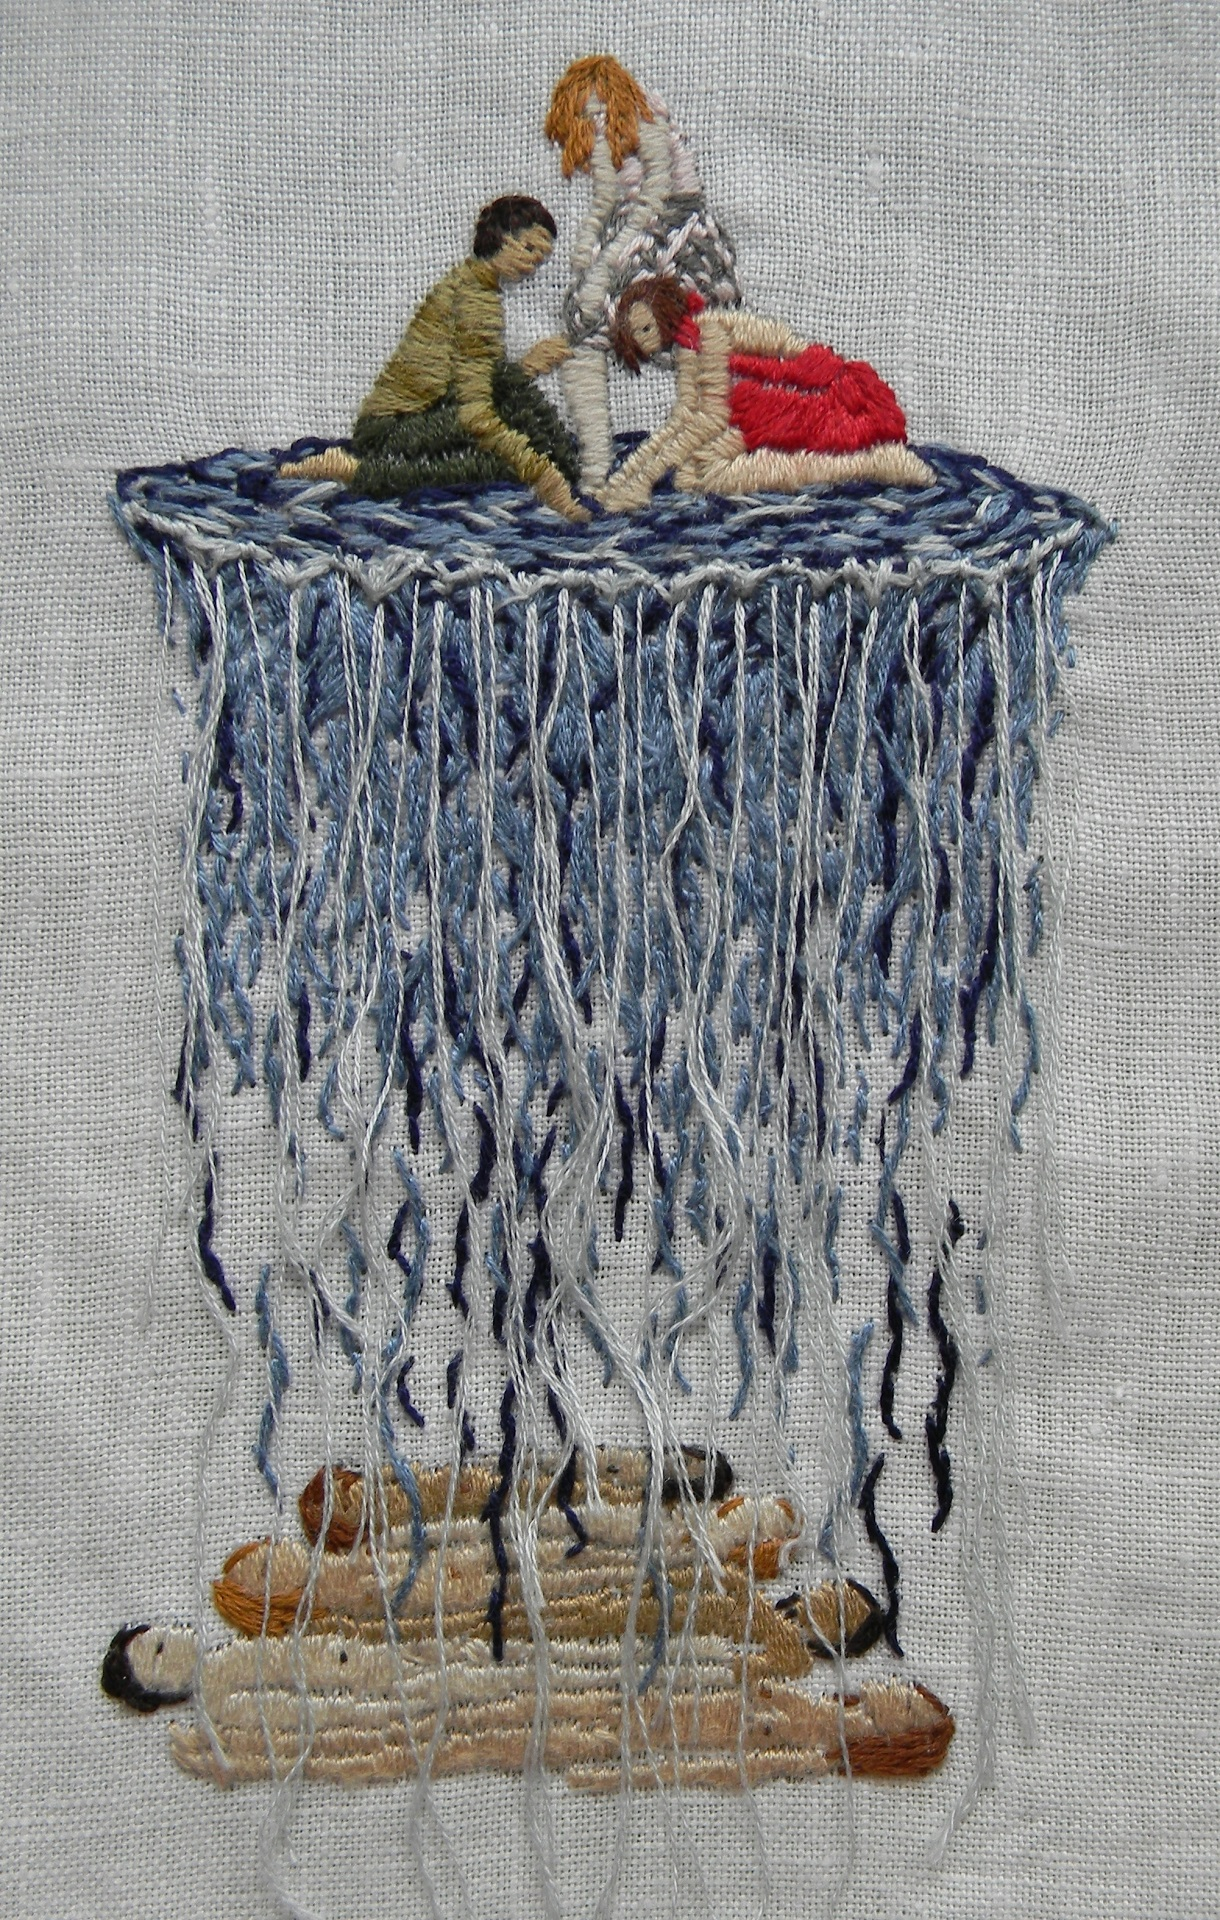 Michelle kingdom embroidery artist los angeles california